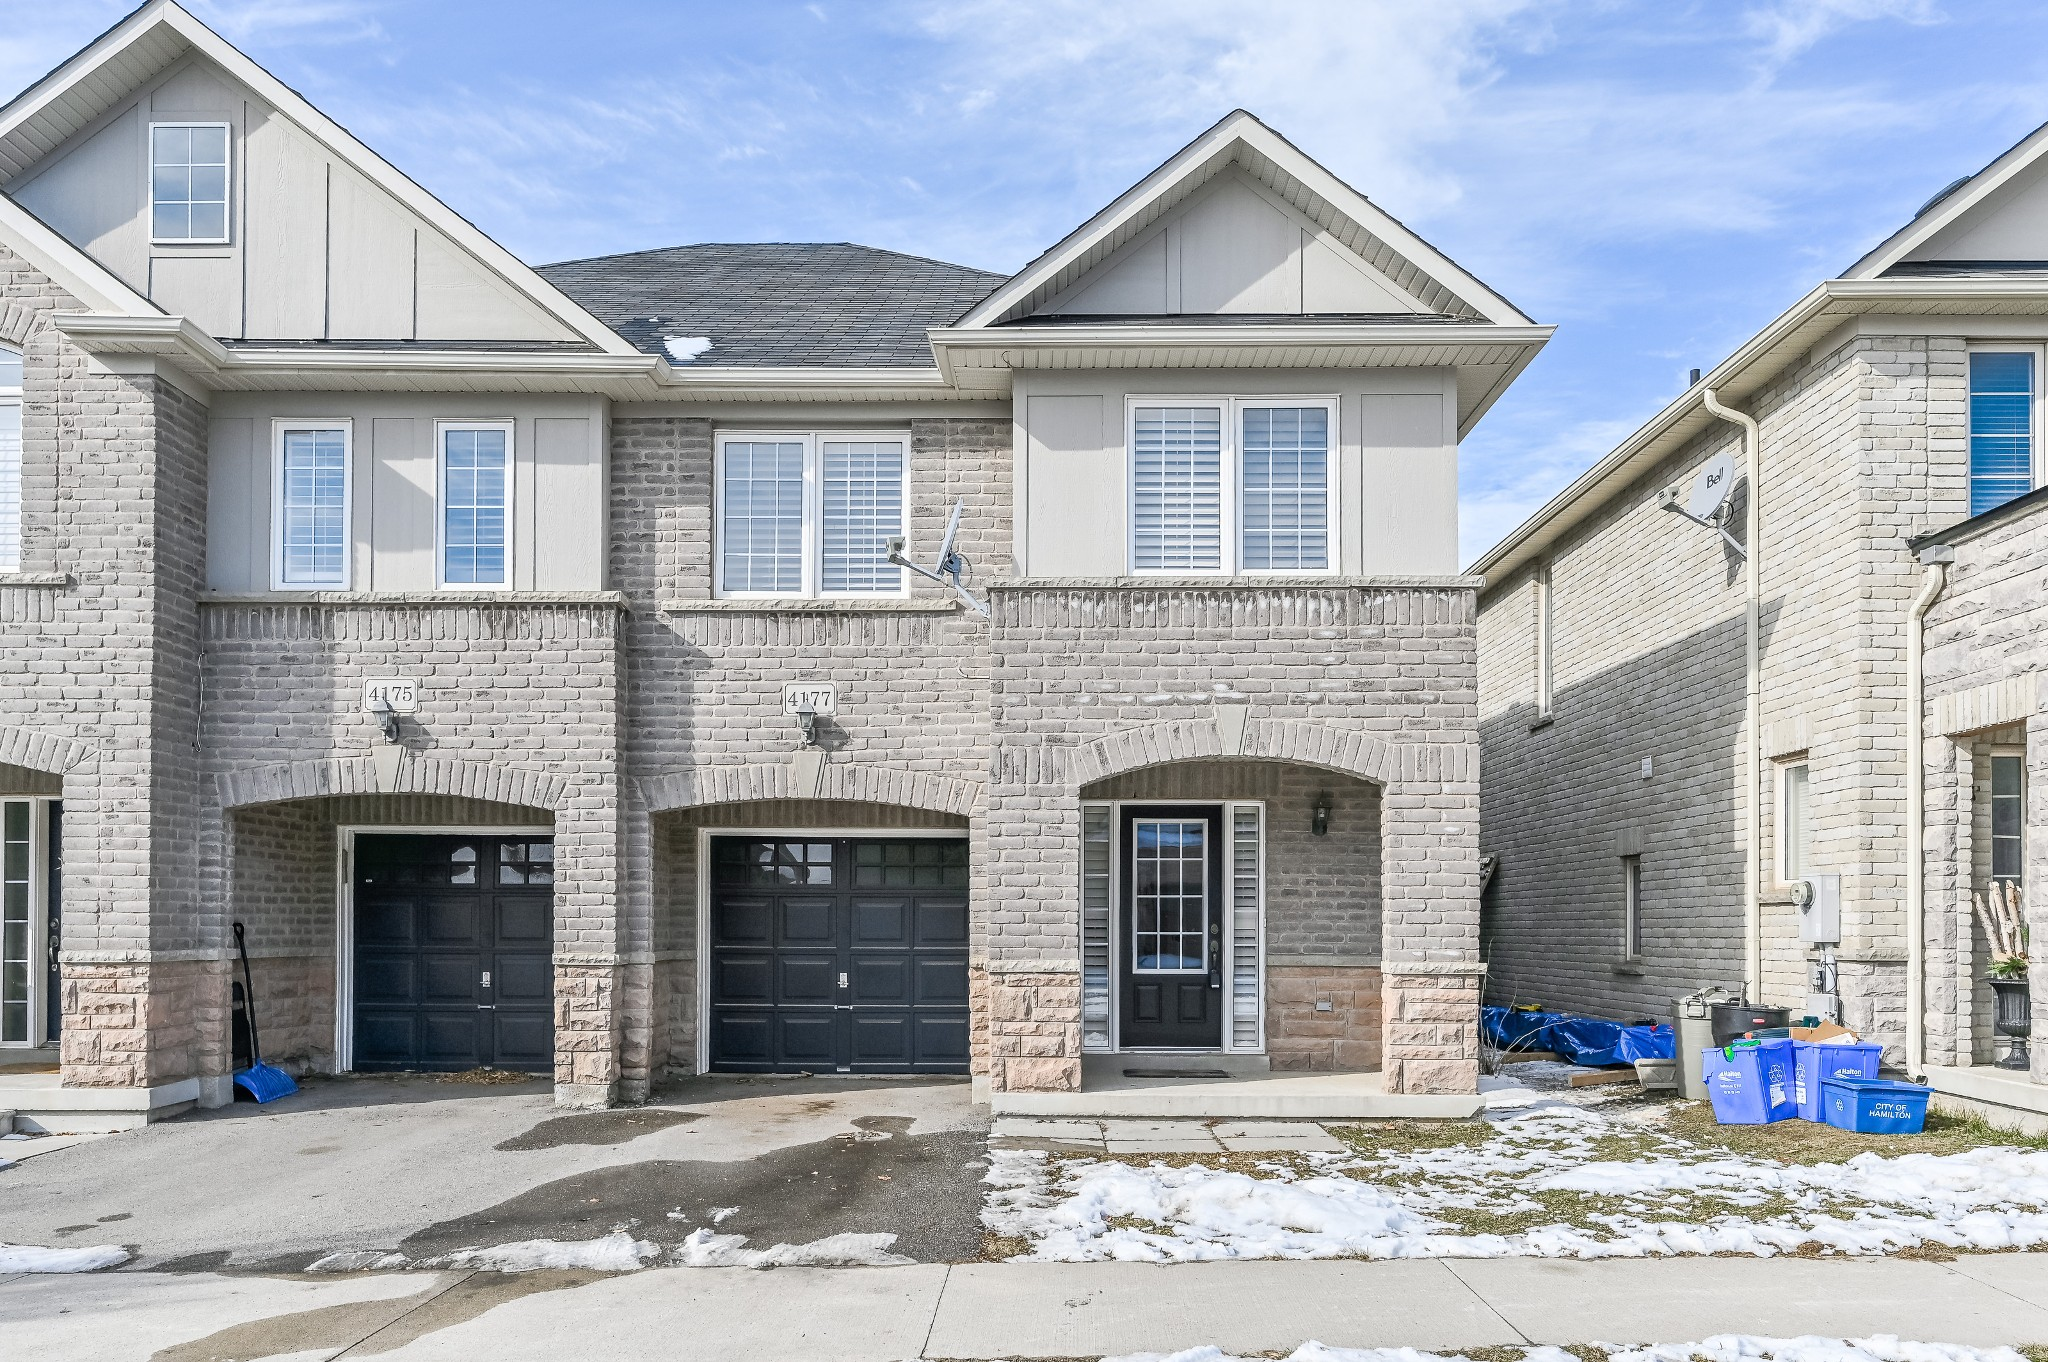 FEATURED LISTING: 4177 Cole Crescent burlington